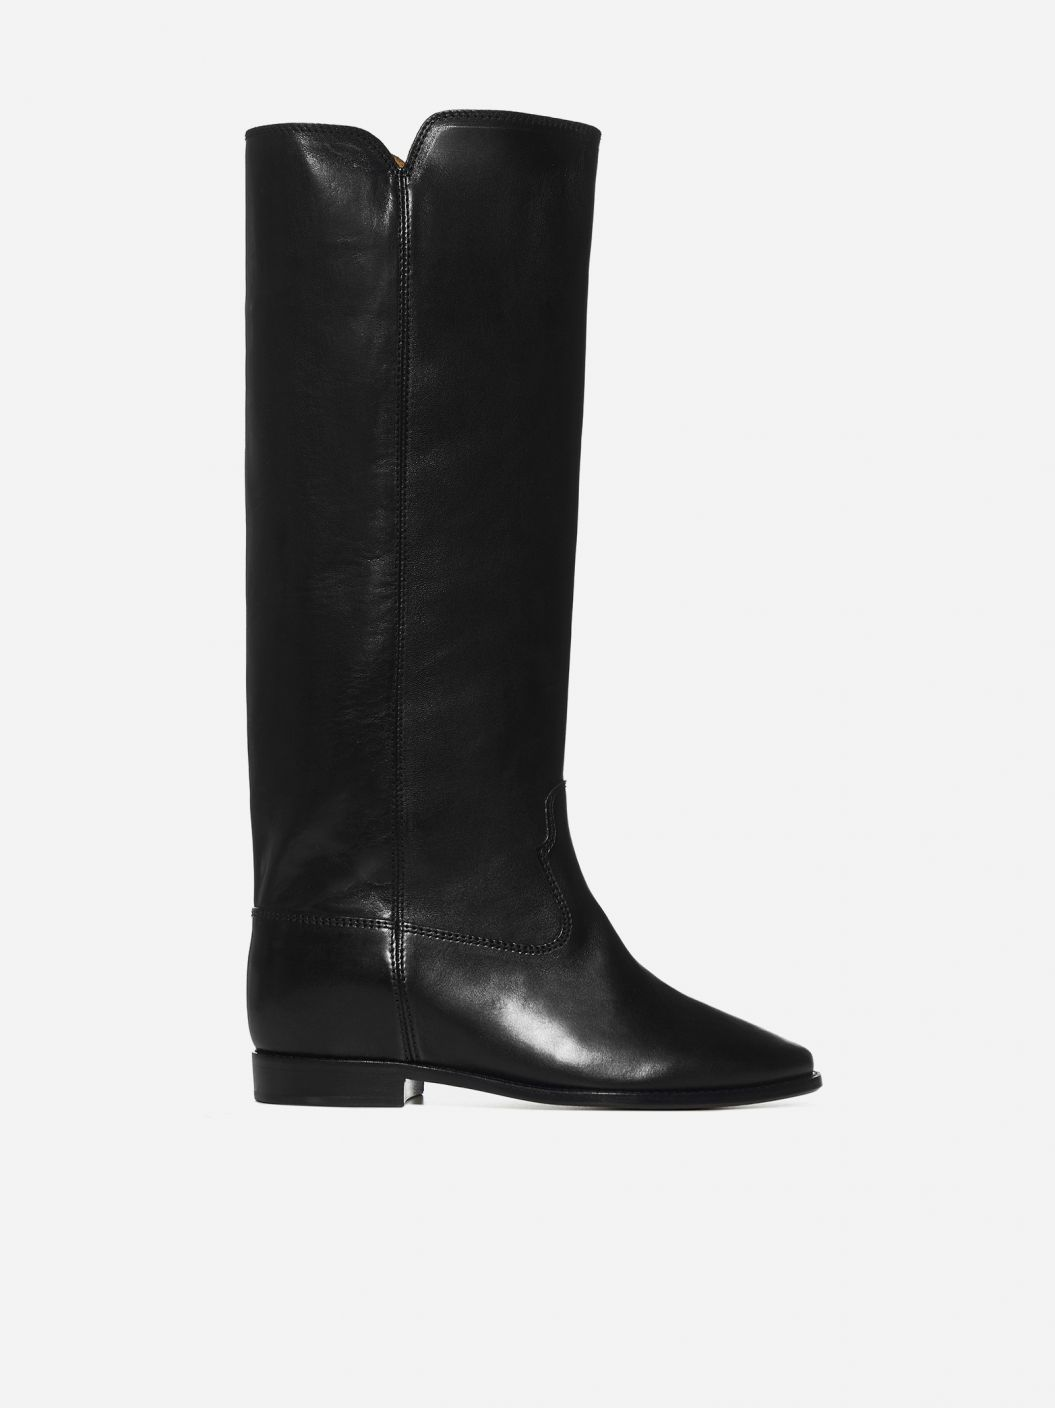 Chess leather boots